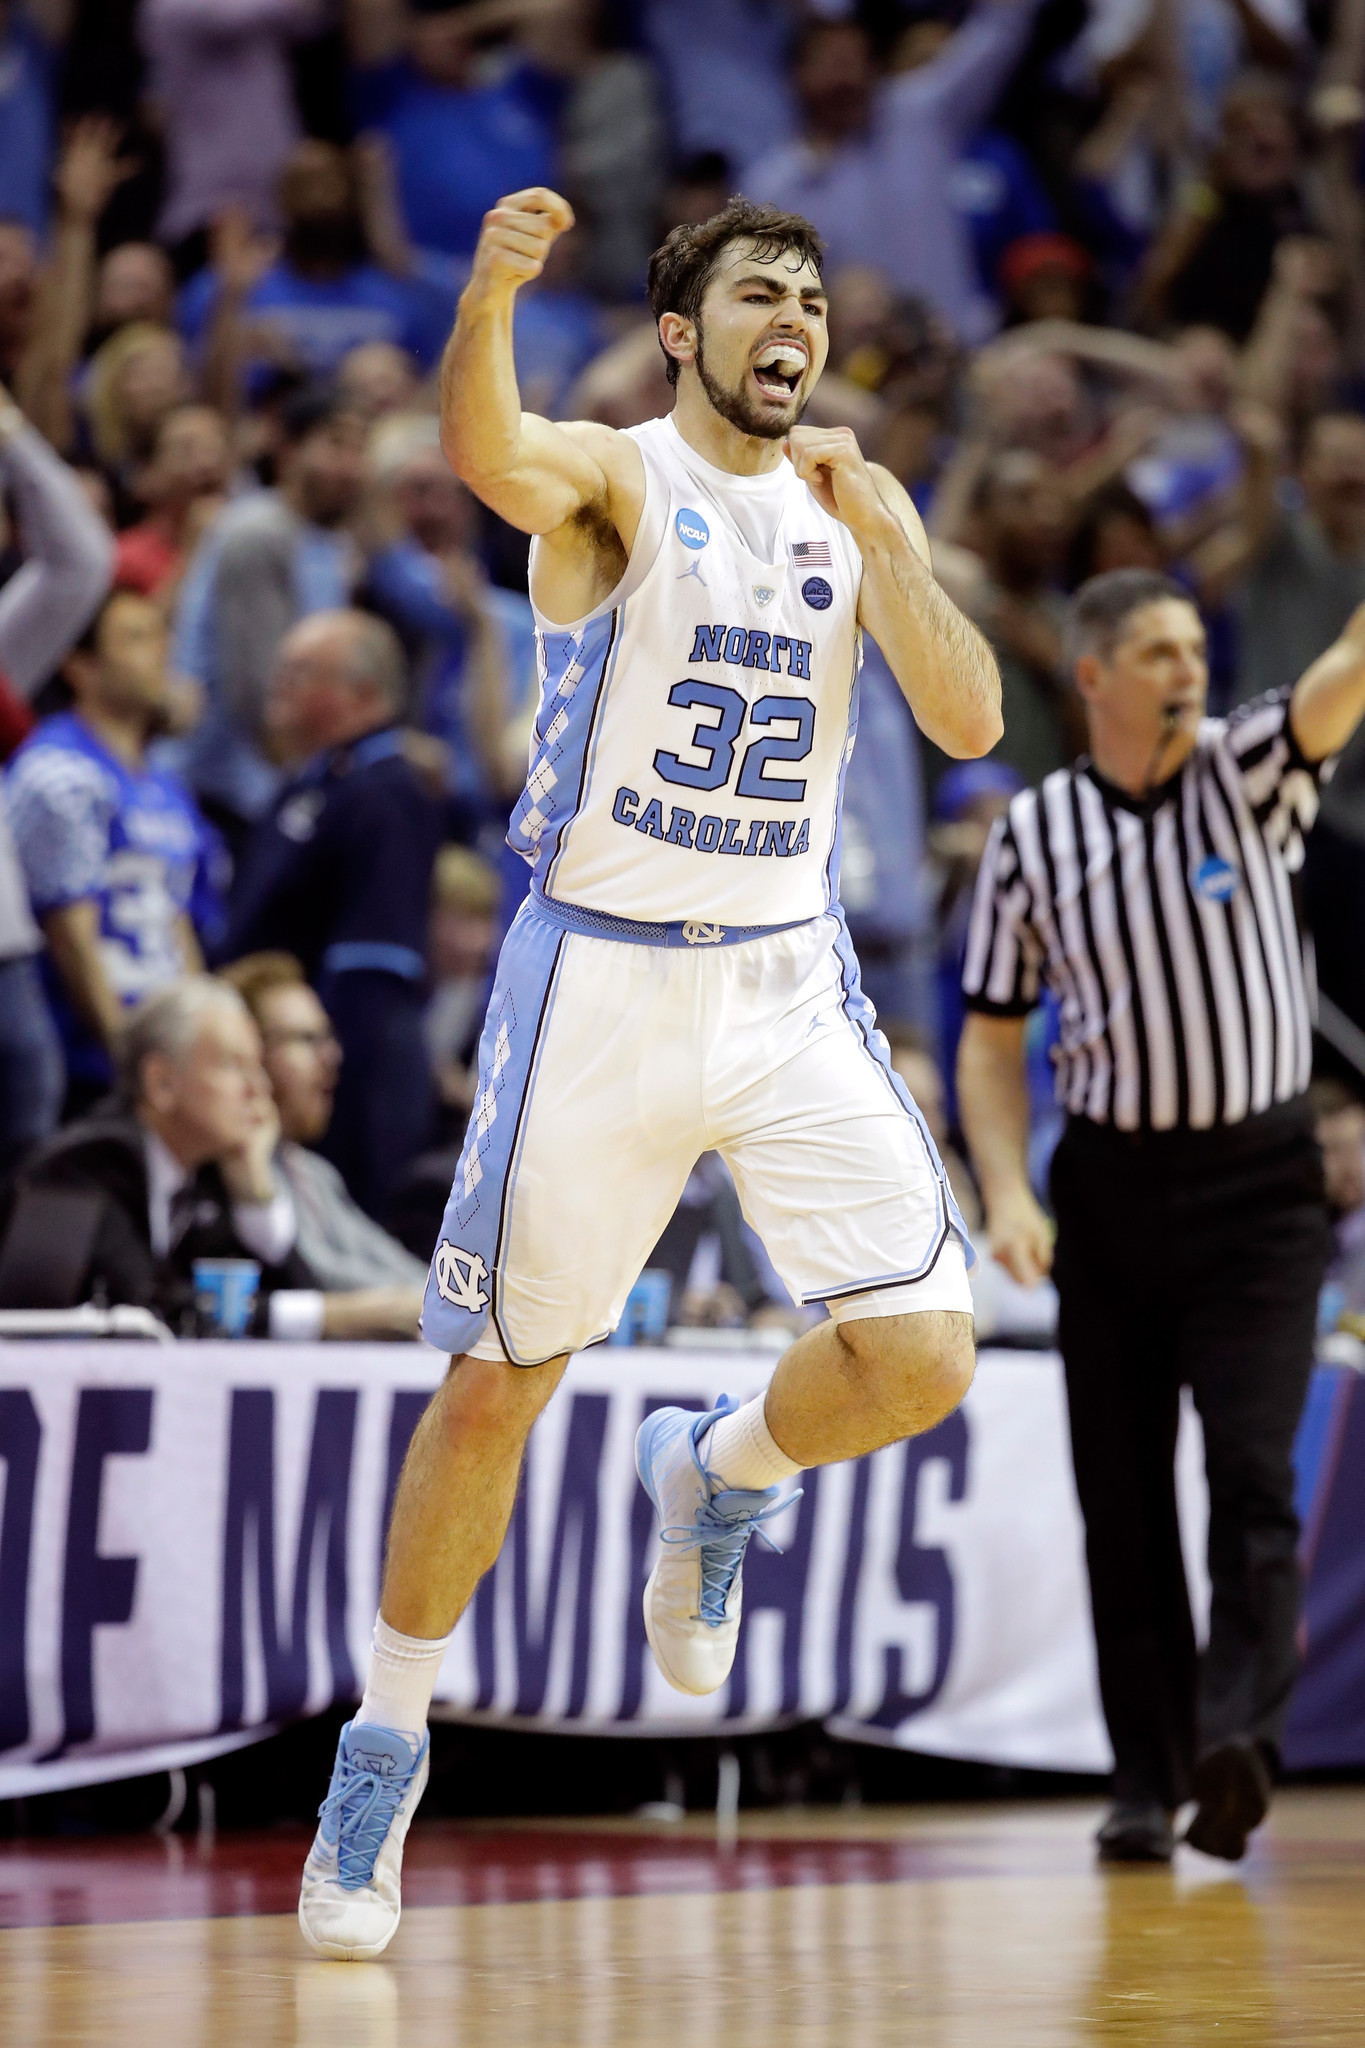 Pictures: How Final Four teams got there - Orlando Sentinel